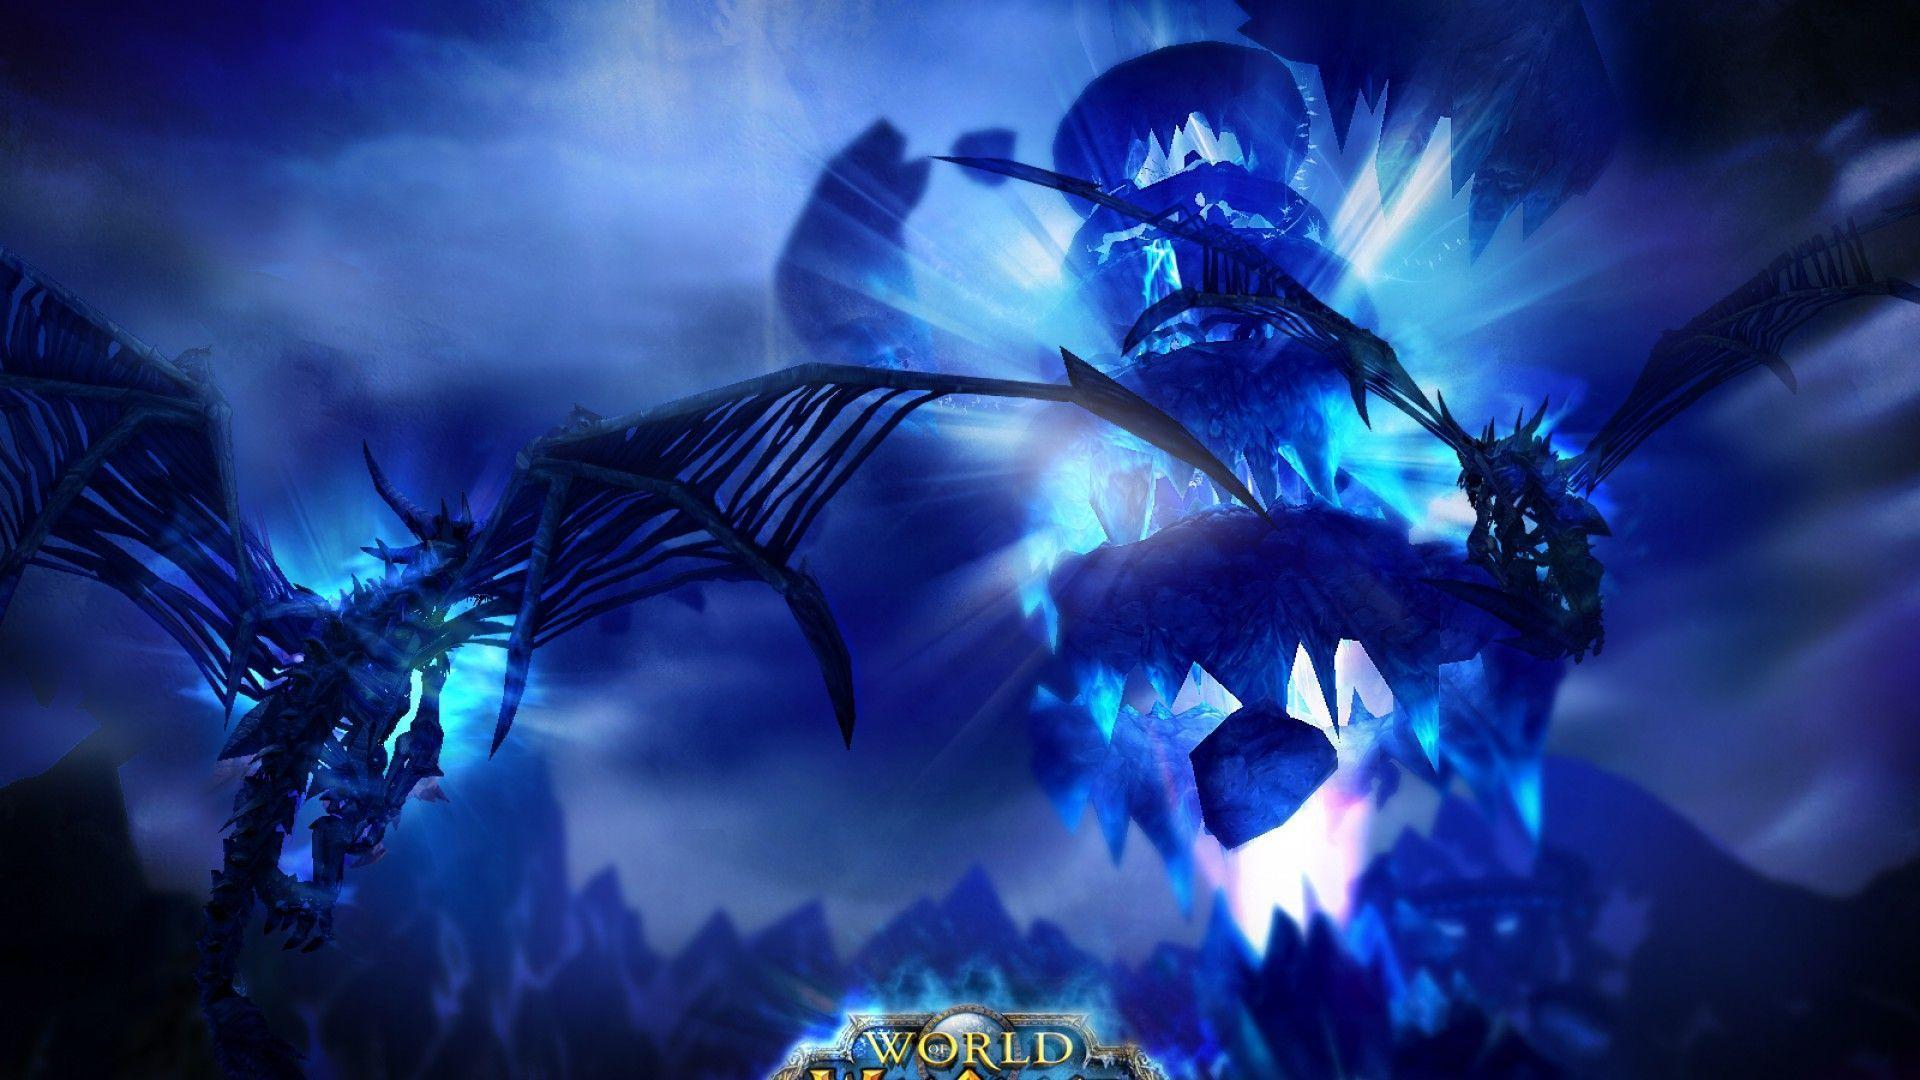 World Of Warcraft Wallpapers - Wallpaper Cave